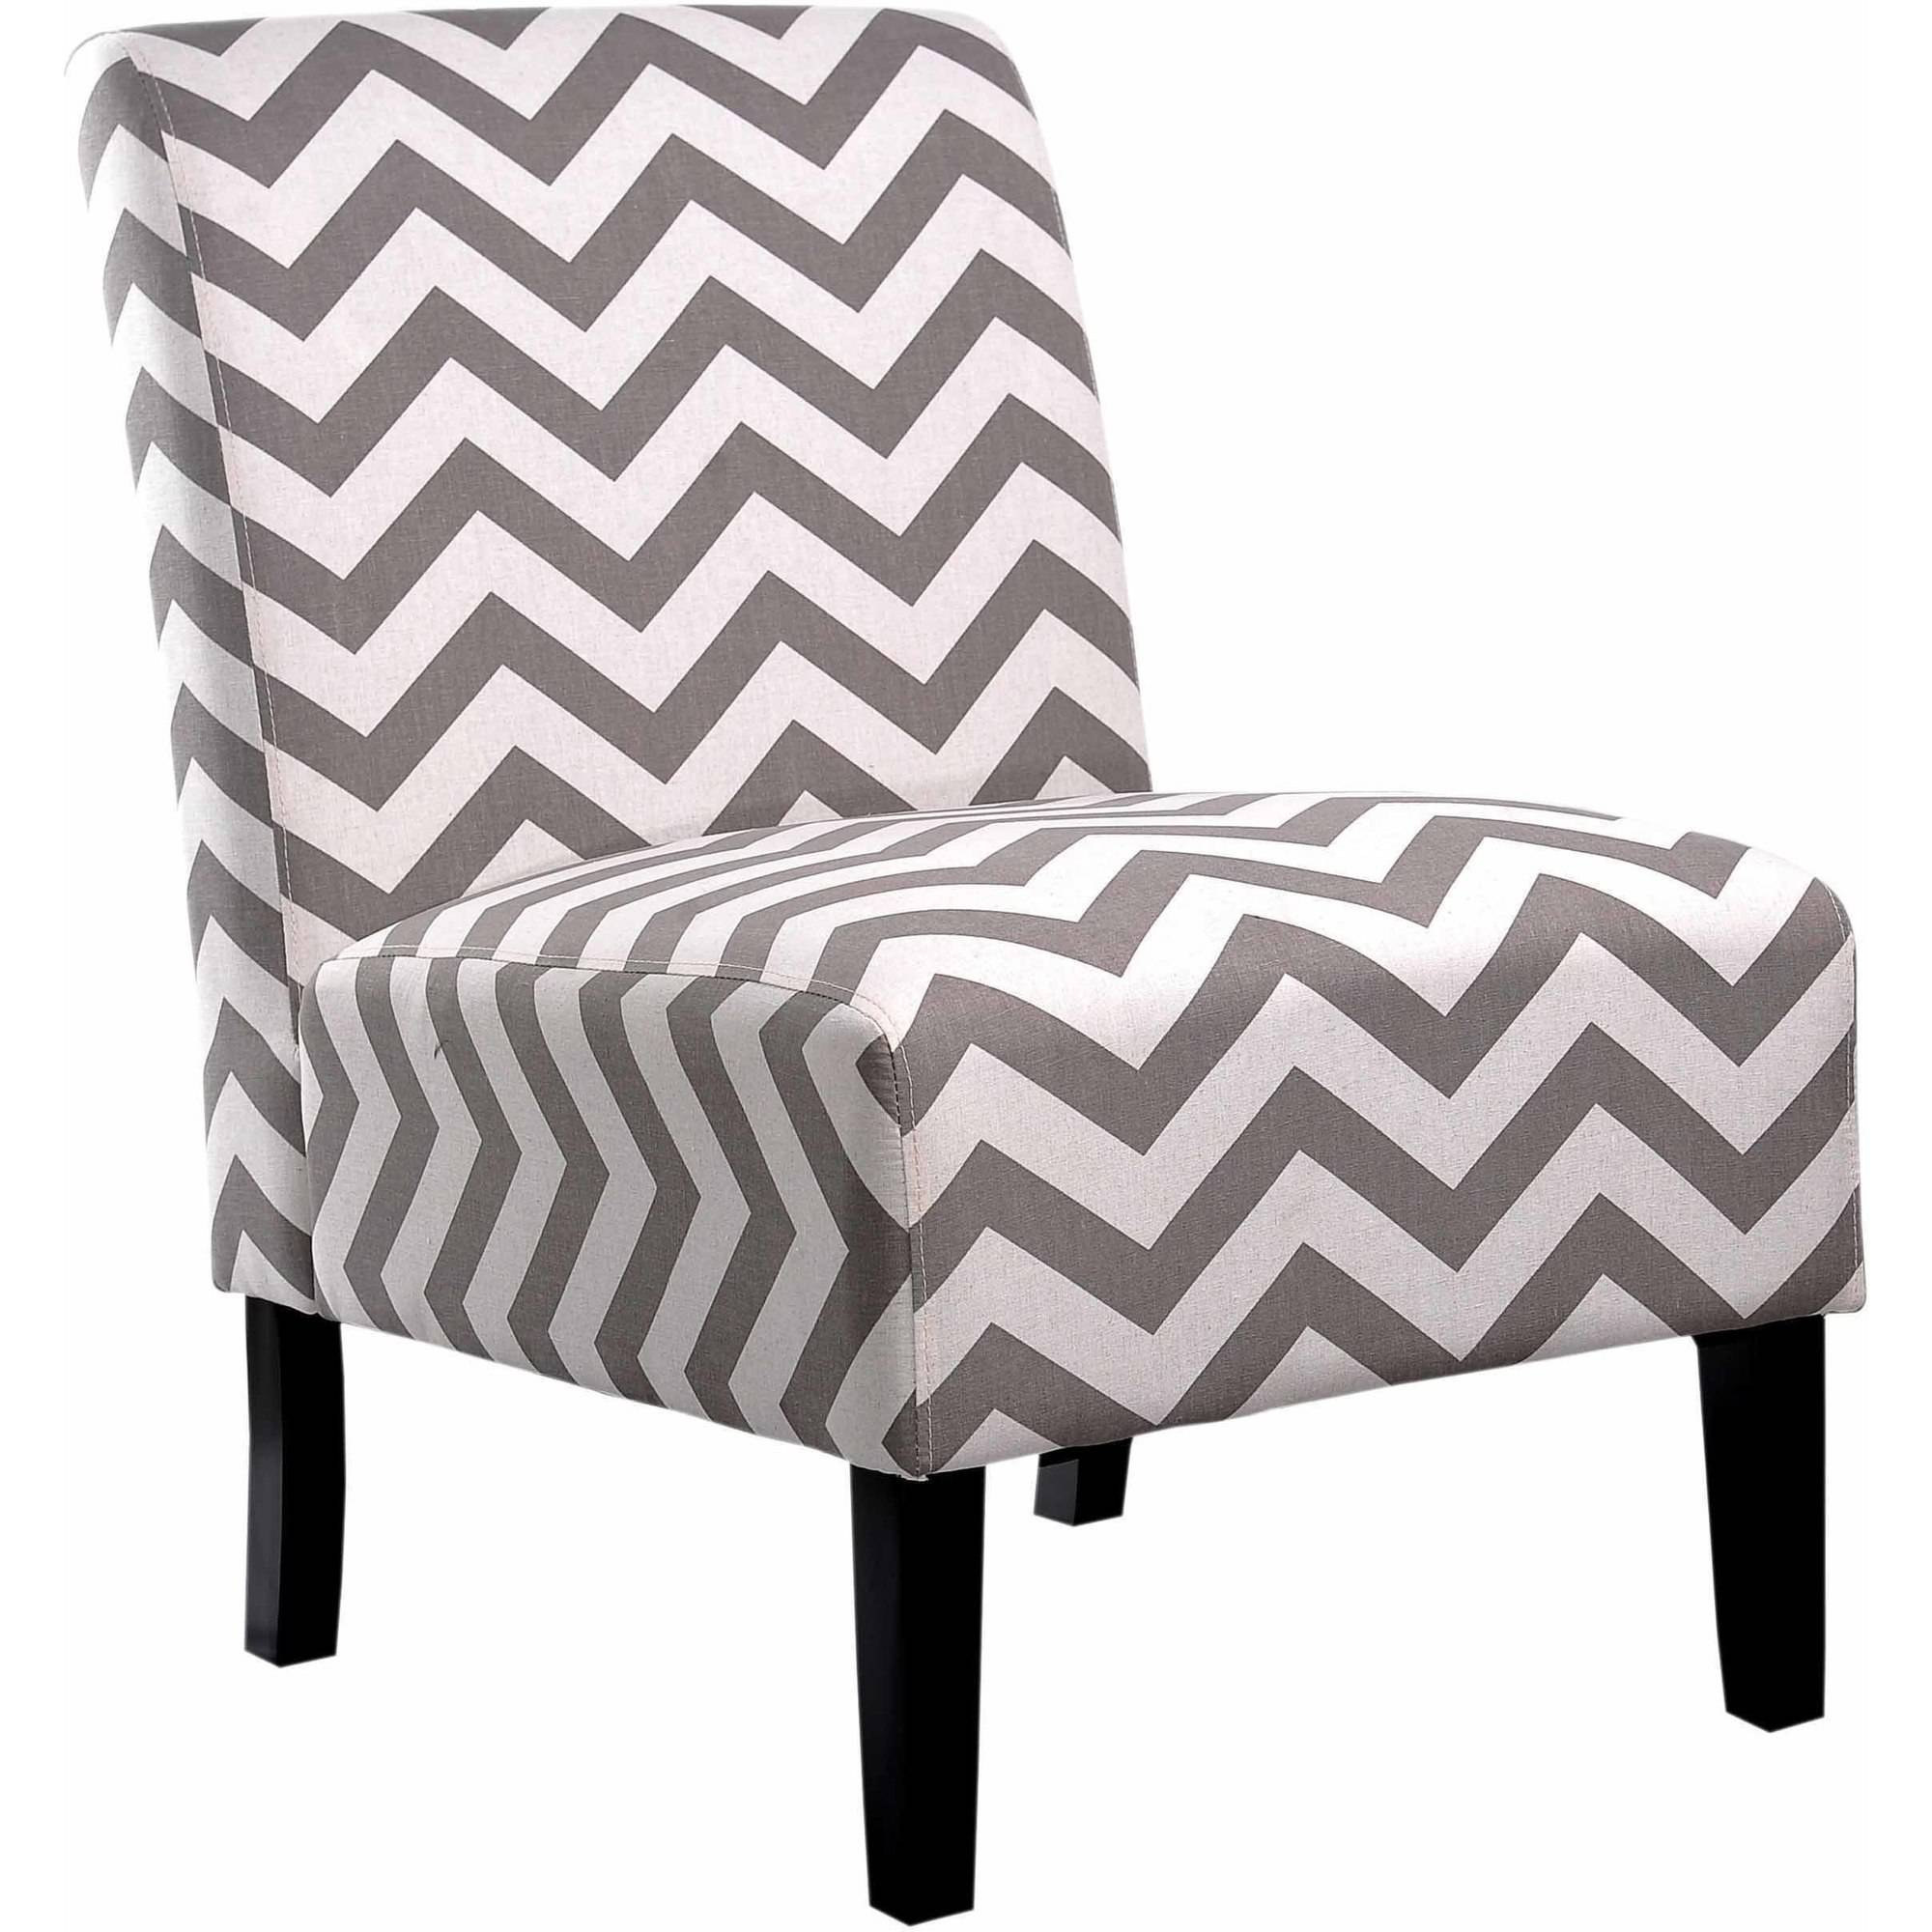 Nathaniel Home Katherine Chevron Accent Chair, Mulitple Colors